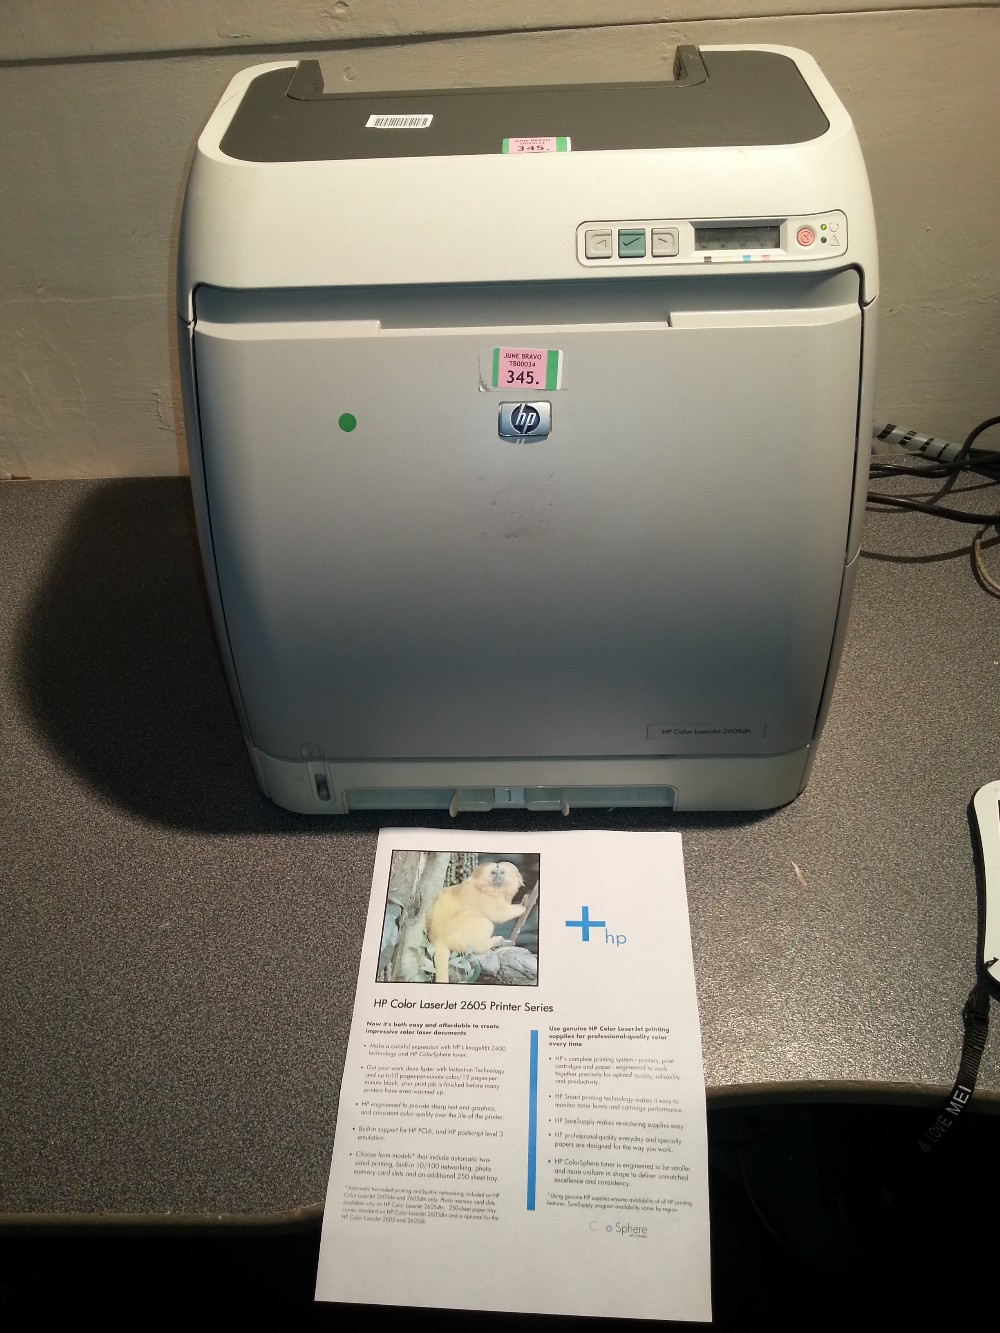 Hp color laserjet 3800 test page coloring pages for Hp printer color test page